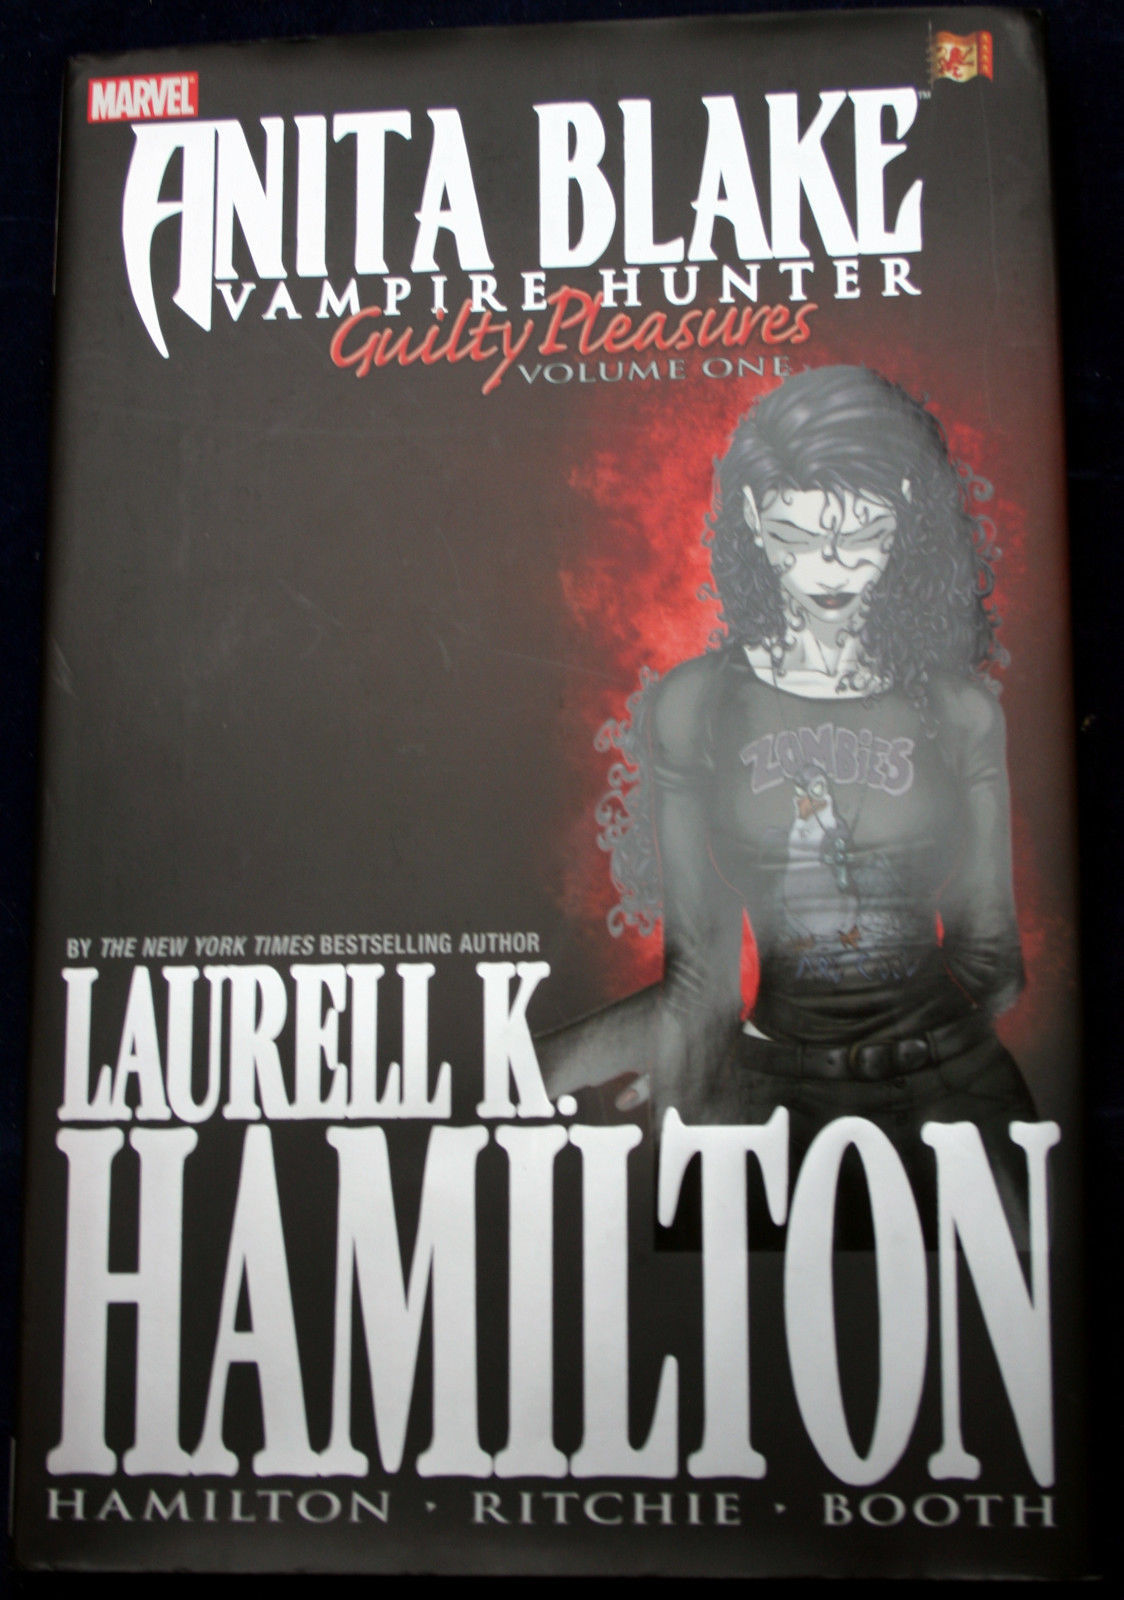 Primary image for GUILTY PLEASURES: ANITA BLAKE VAMPIRE HUNTER V1 Hamilton Ritchie Booth Graphic